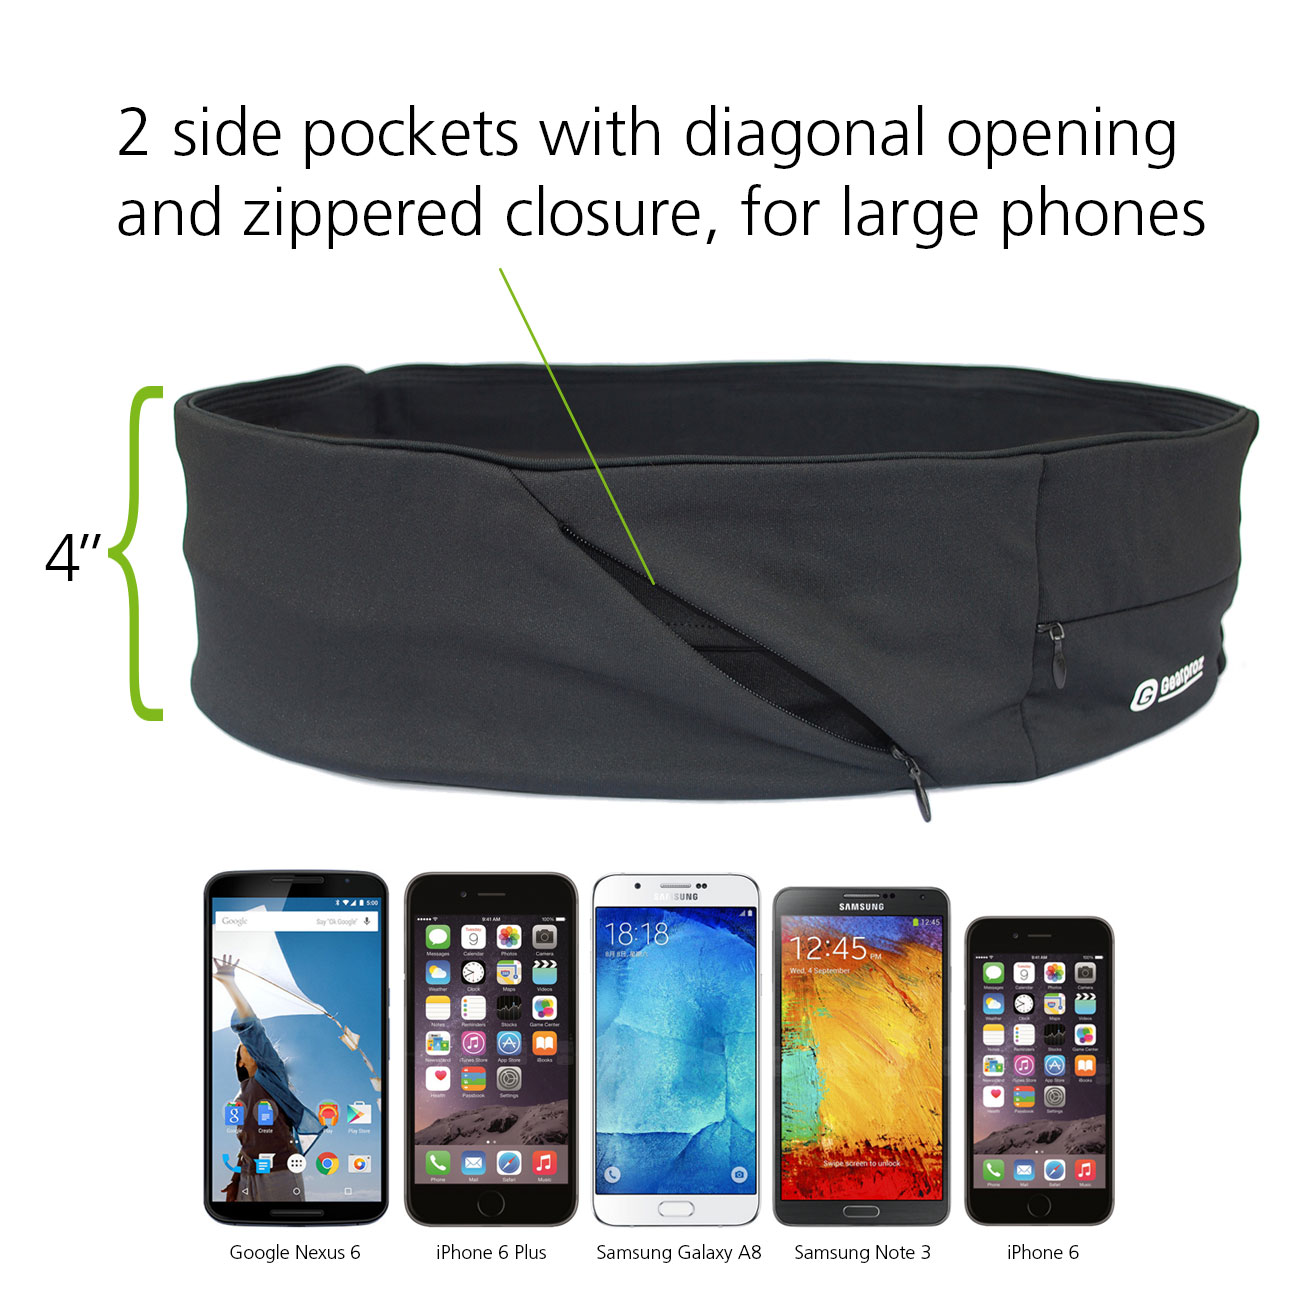 Sport Belt Plus holds larger phones